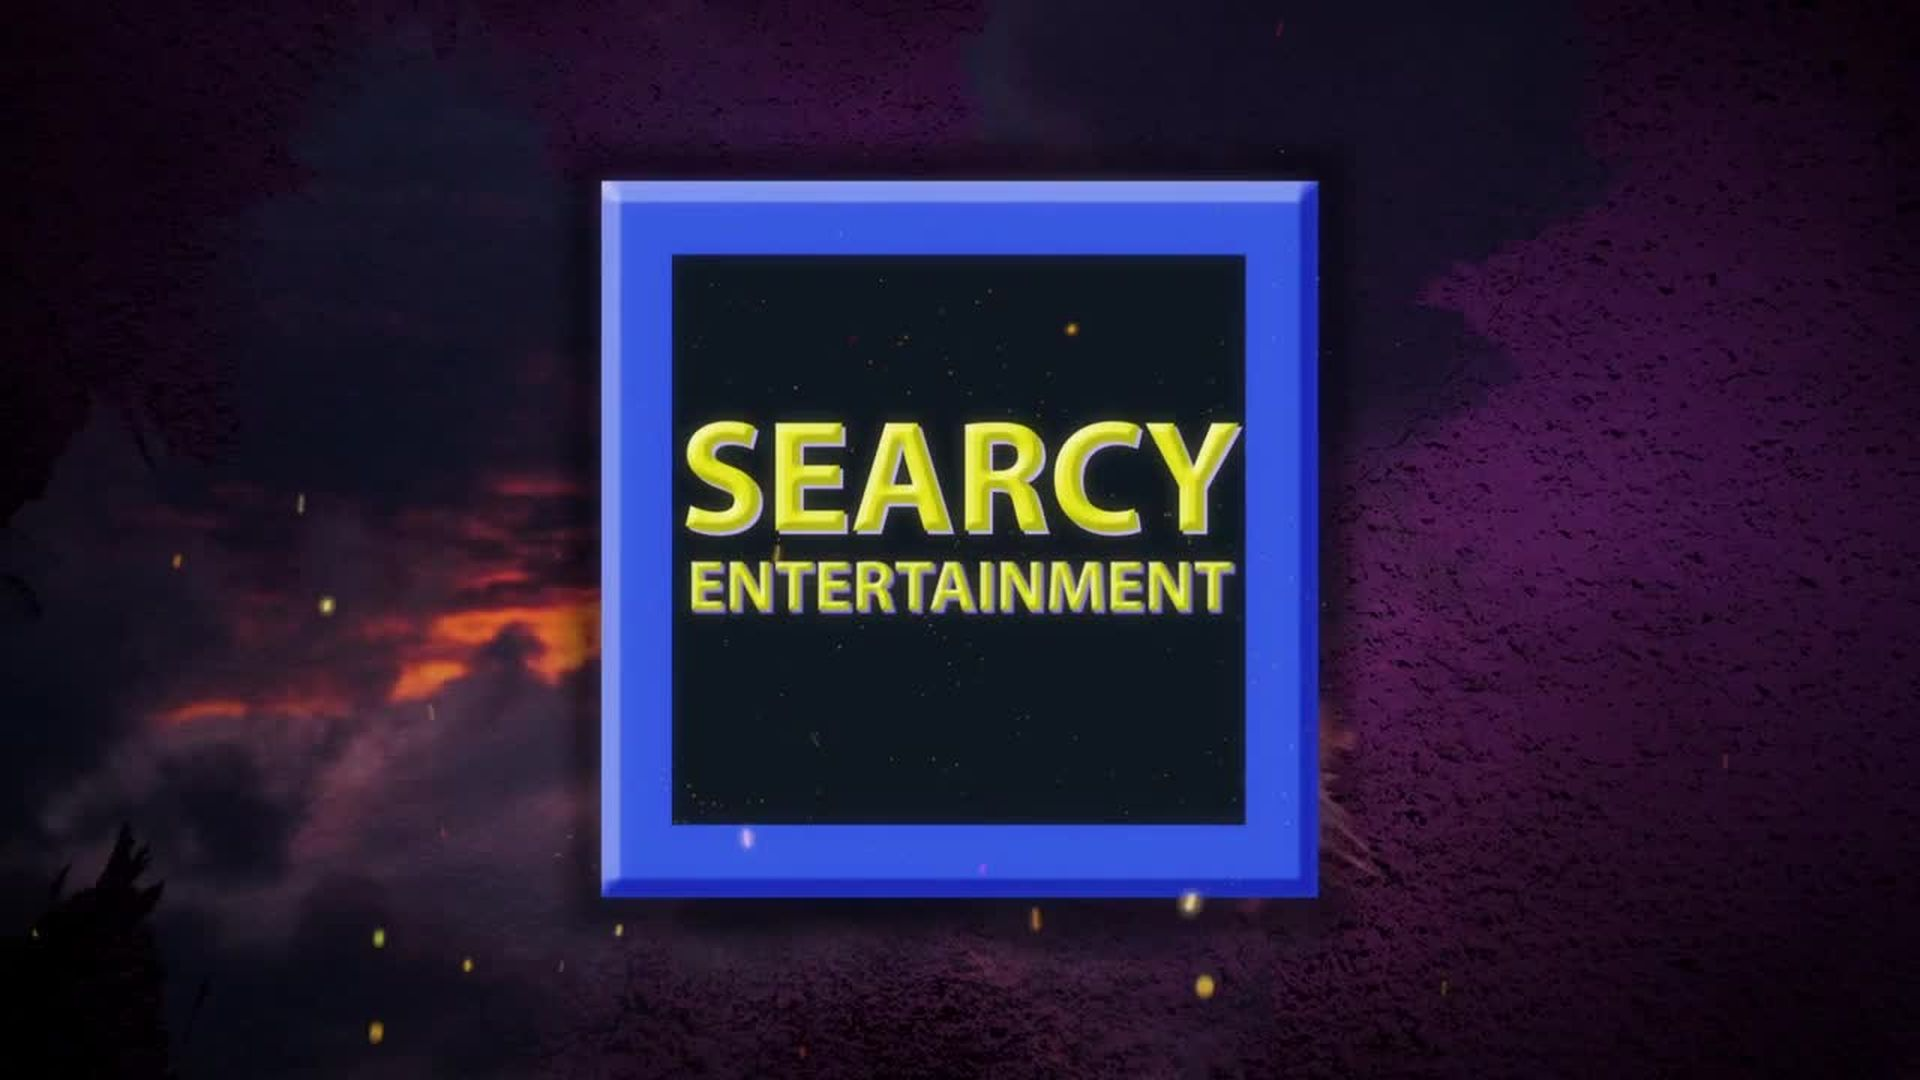 SEARCY ENTERTAINMENT - EPISODE ONE - VARIETY TALK LIVE WITH LINDA LEAK